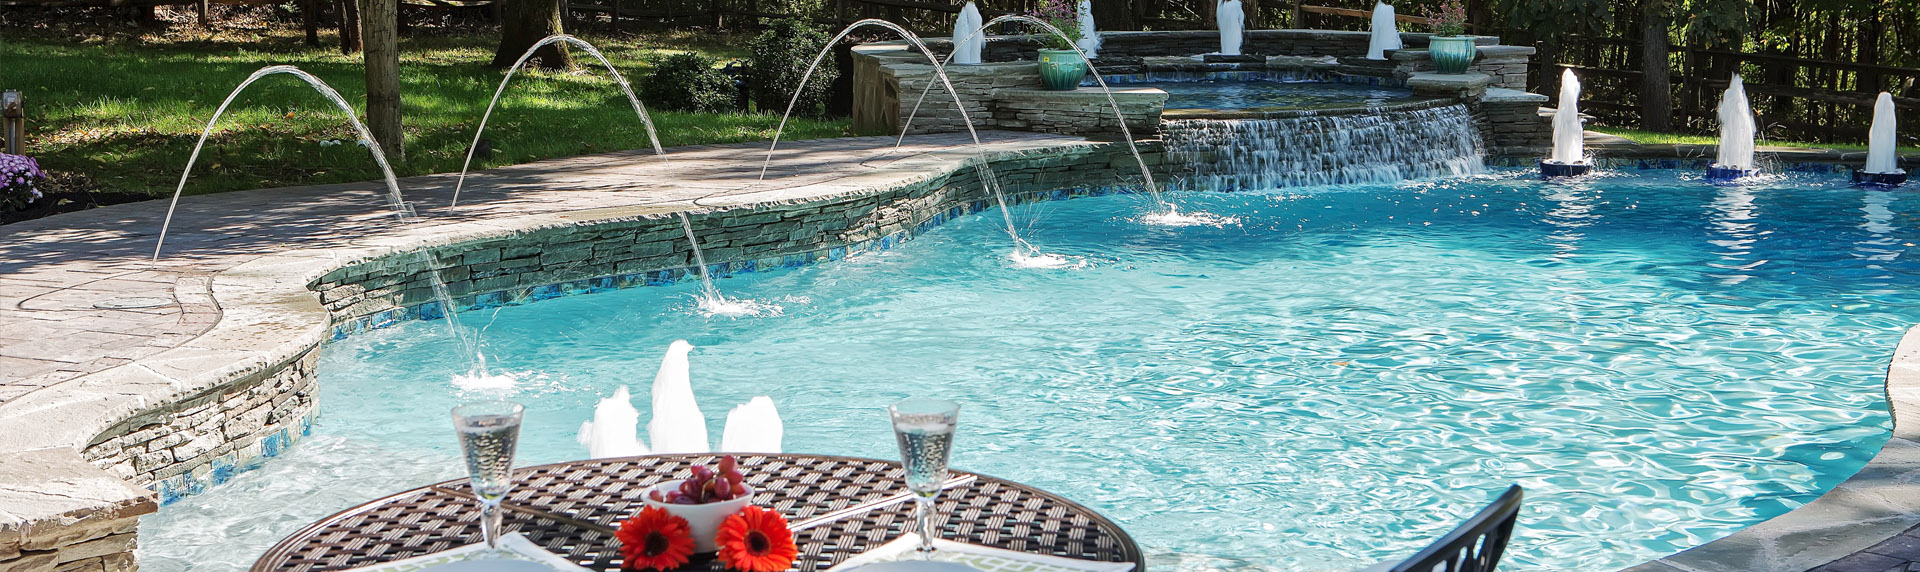 Seasonal Pool Cleaning Service New Jersey